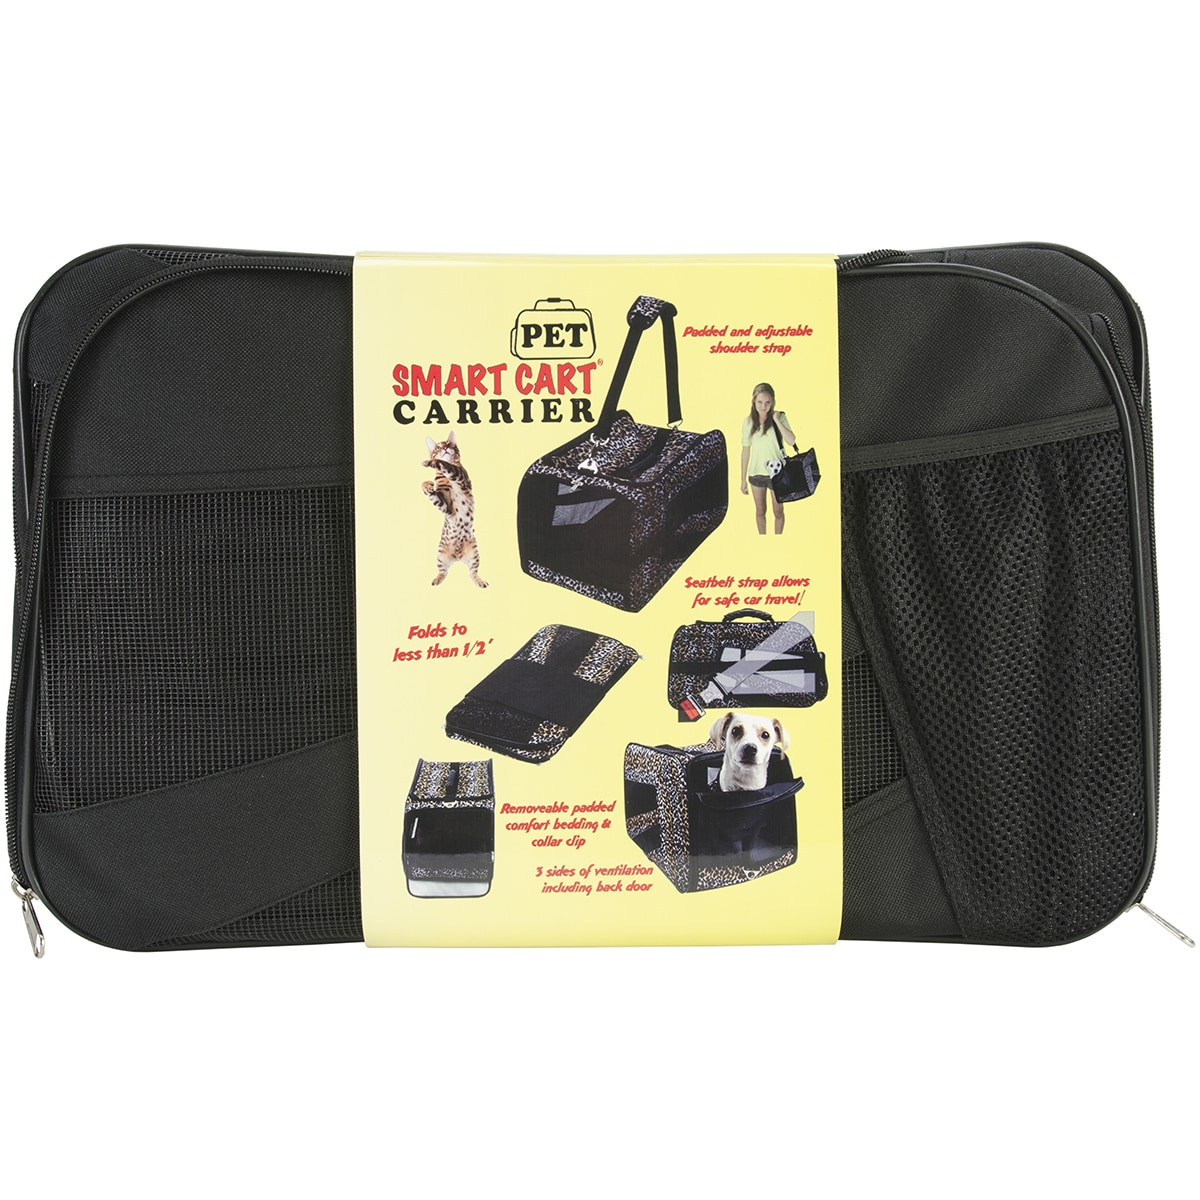 "dbEST Pet Smart Cart Carrier -Medium 20""X4""X11""-Black (Bl..."